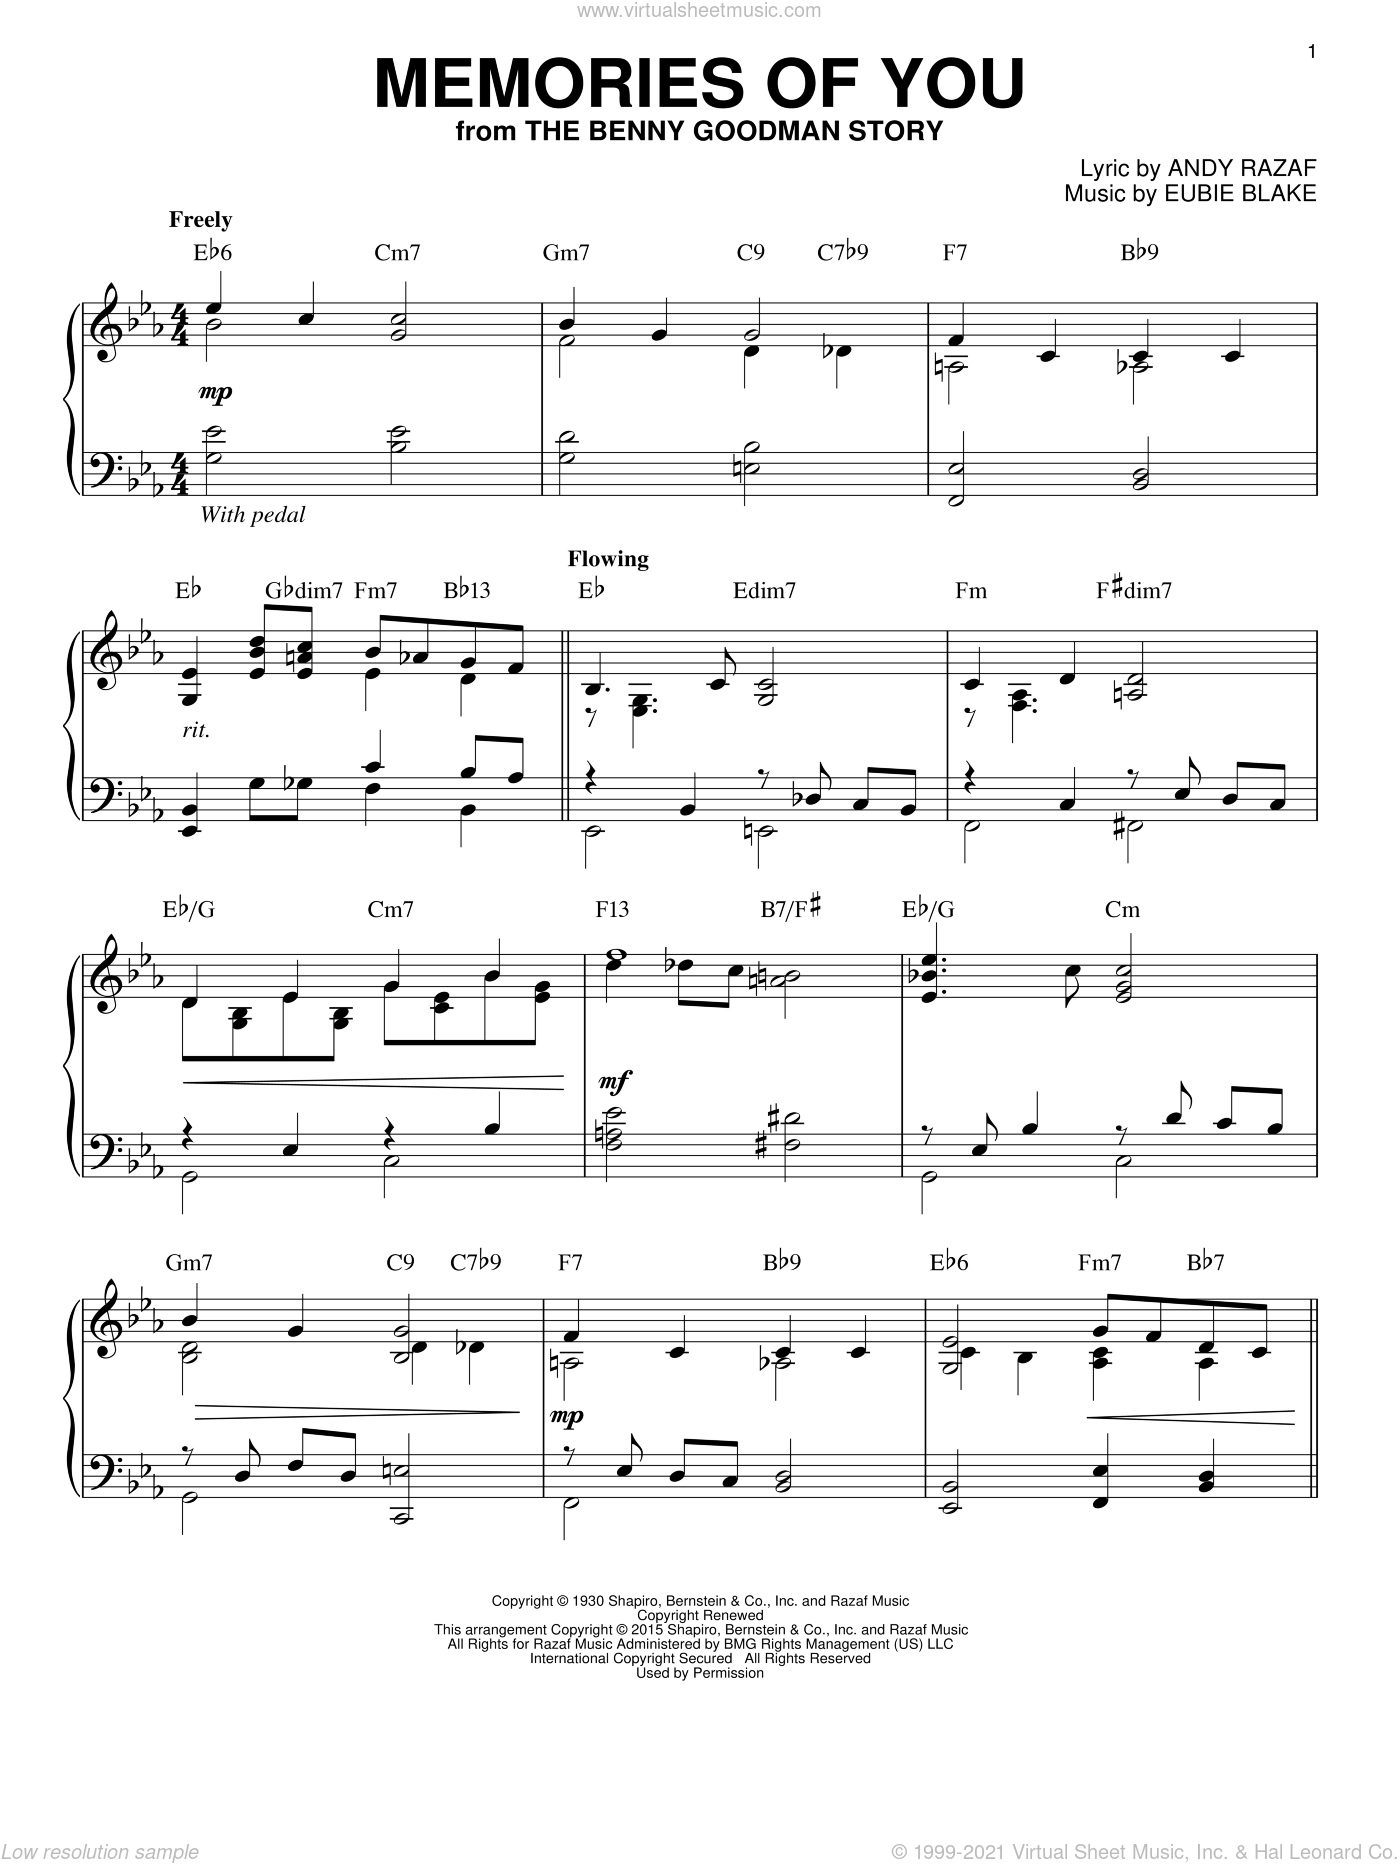 Memories Of You sheet music for piano solo by Andy Razaf and Eubie Blake, intermediate skill level